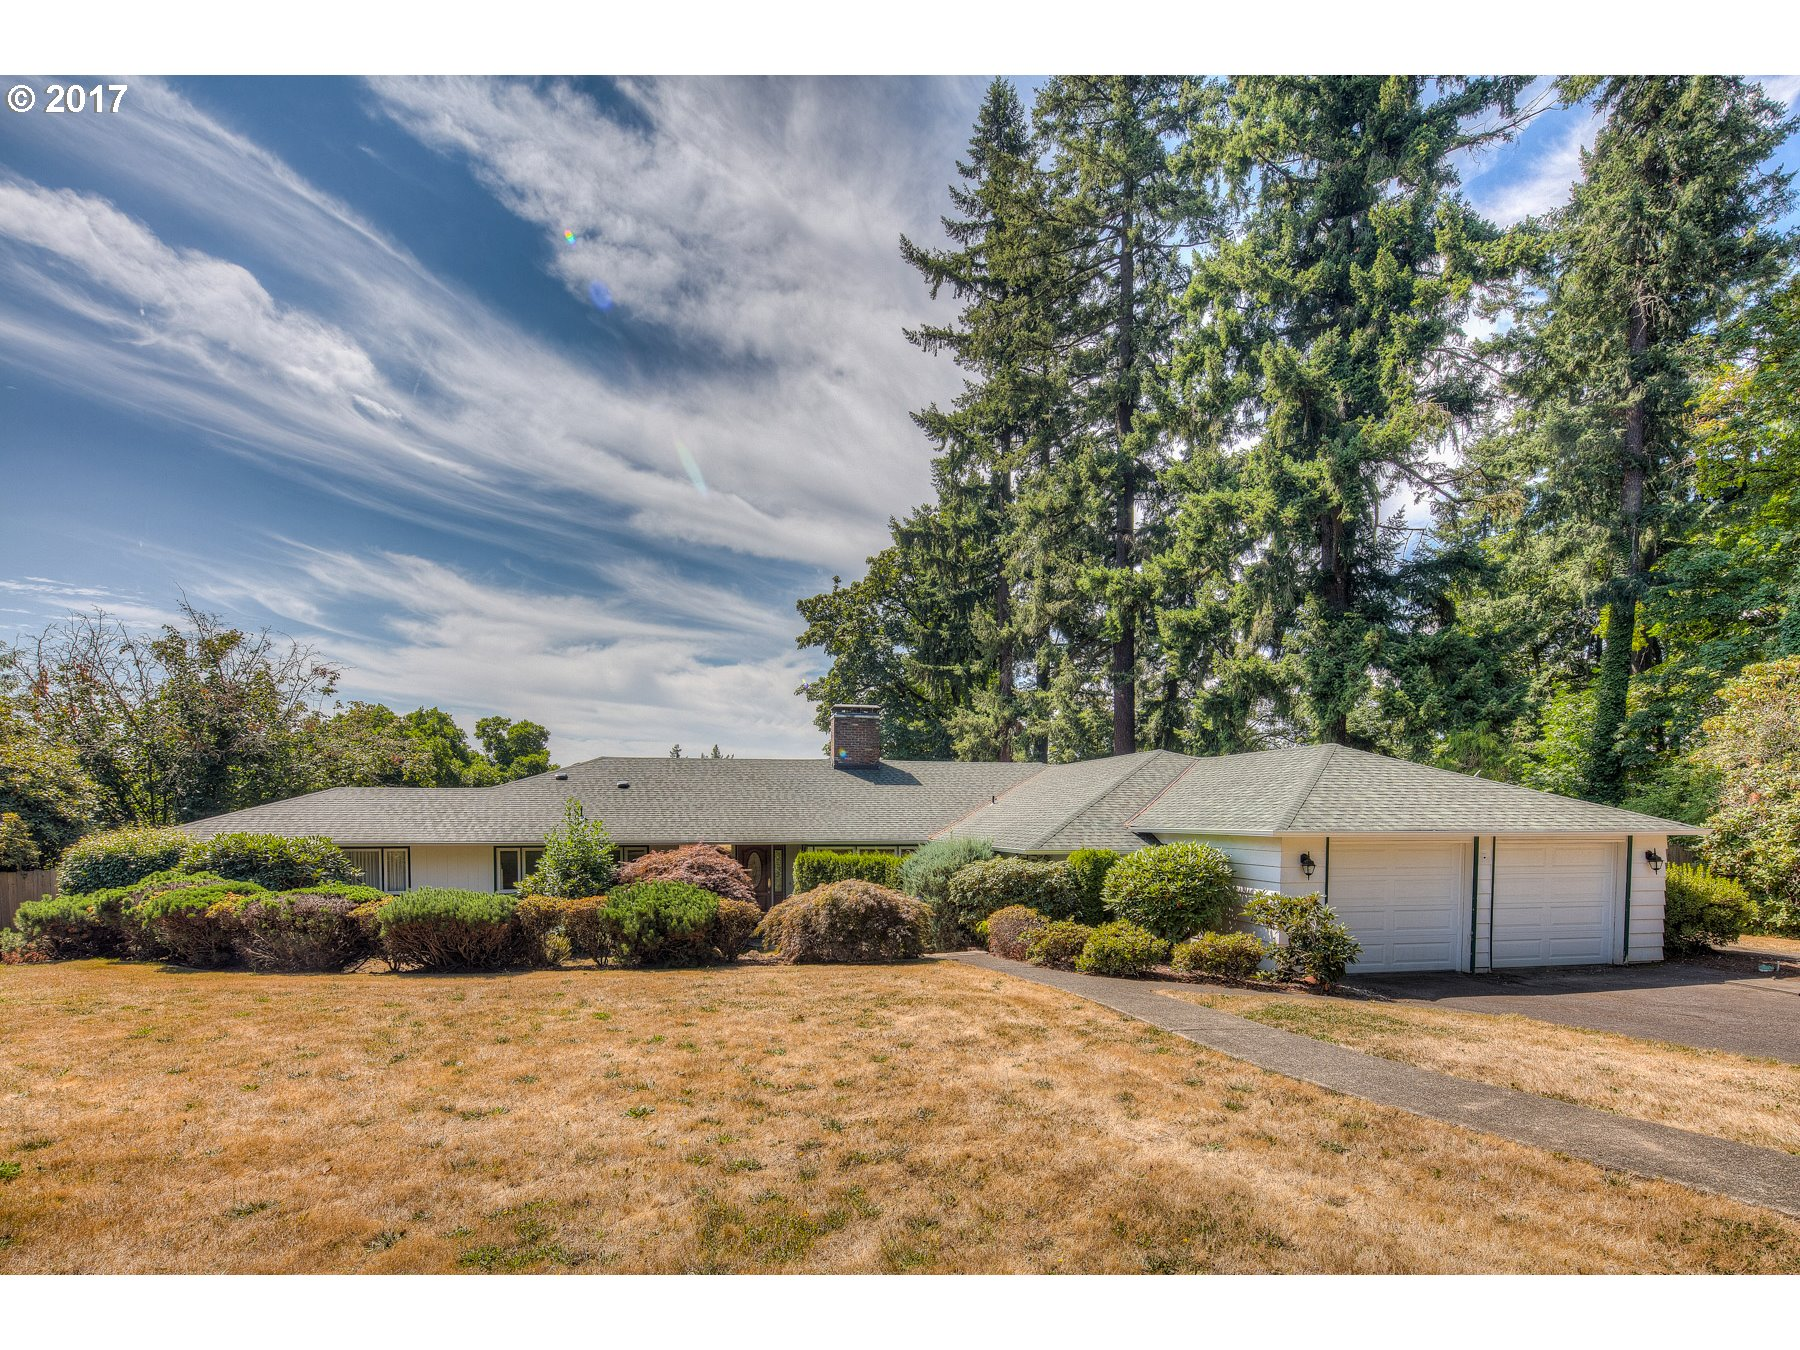 One Level Ranch Homes For Sale in Vancouver WA Vancouver